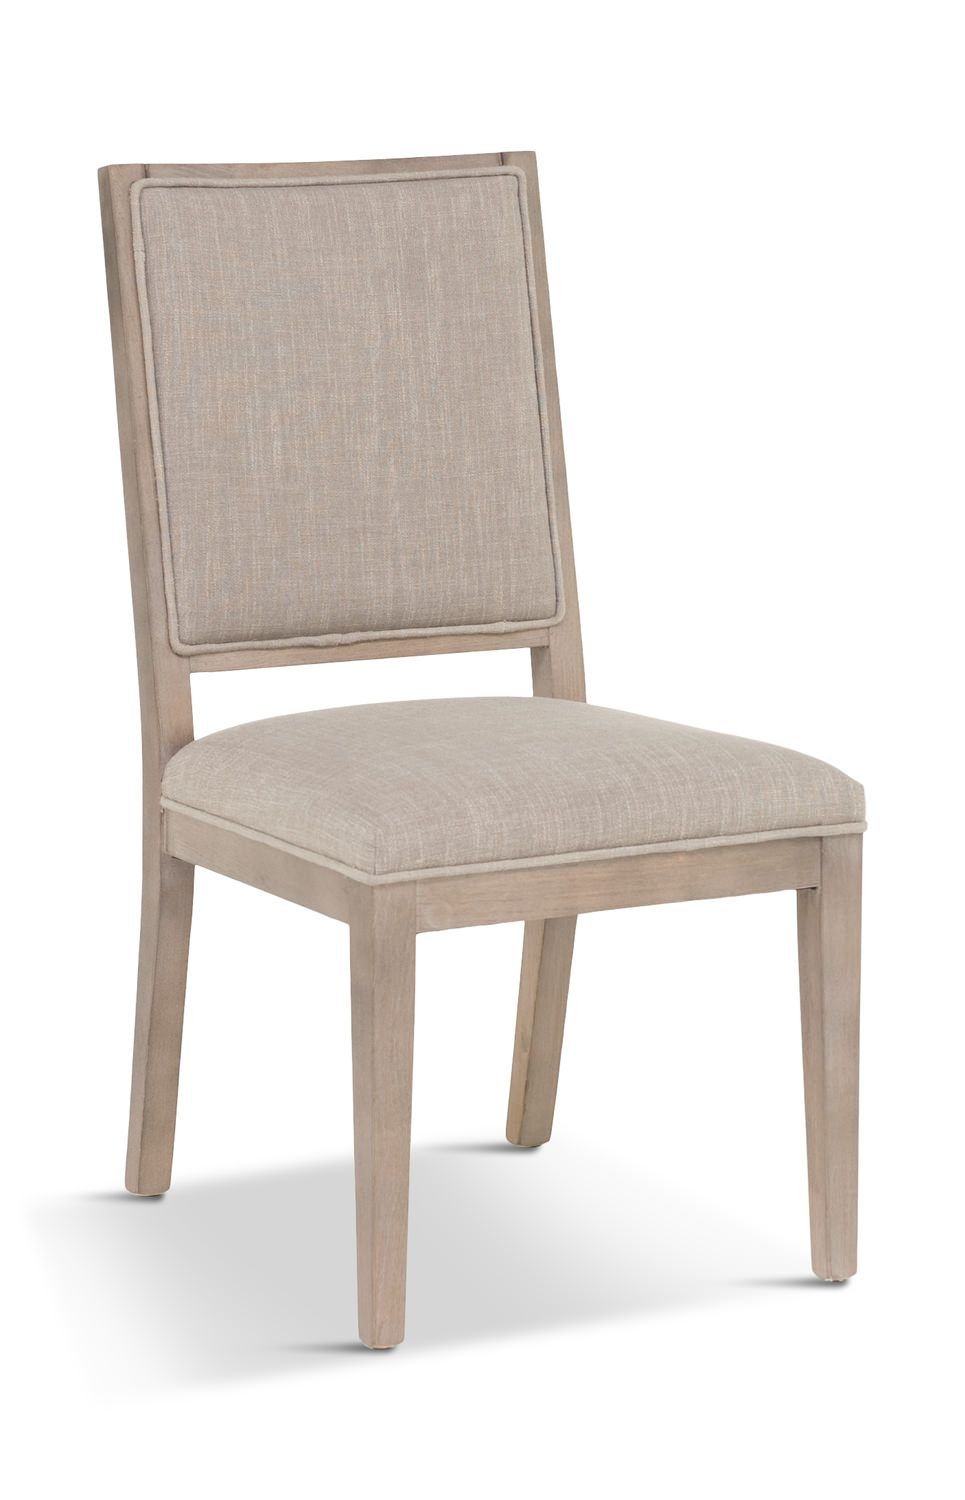 Modern French Dining Chair by Thomas Cole | HOM Furniture